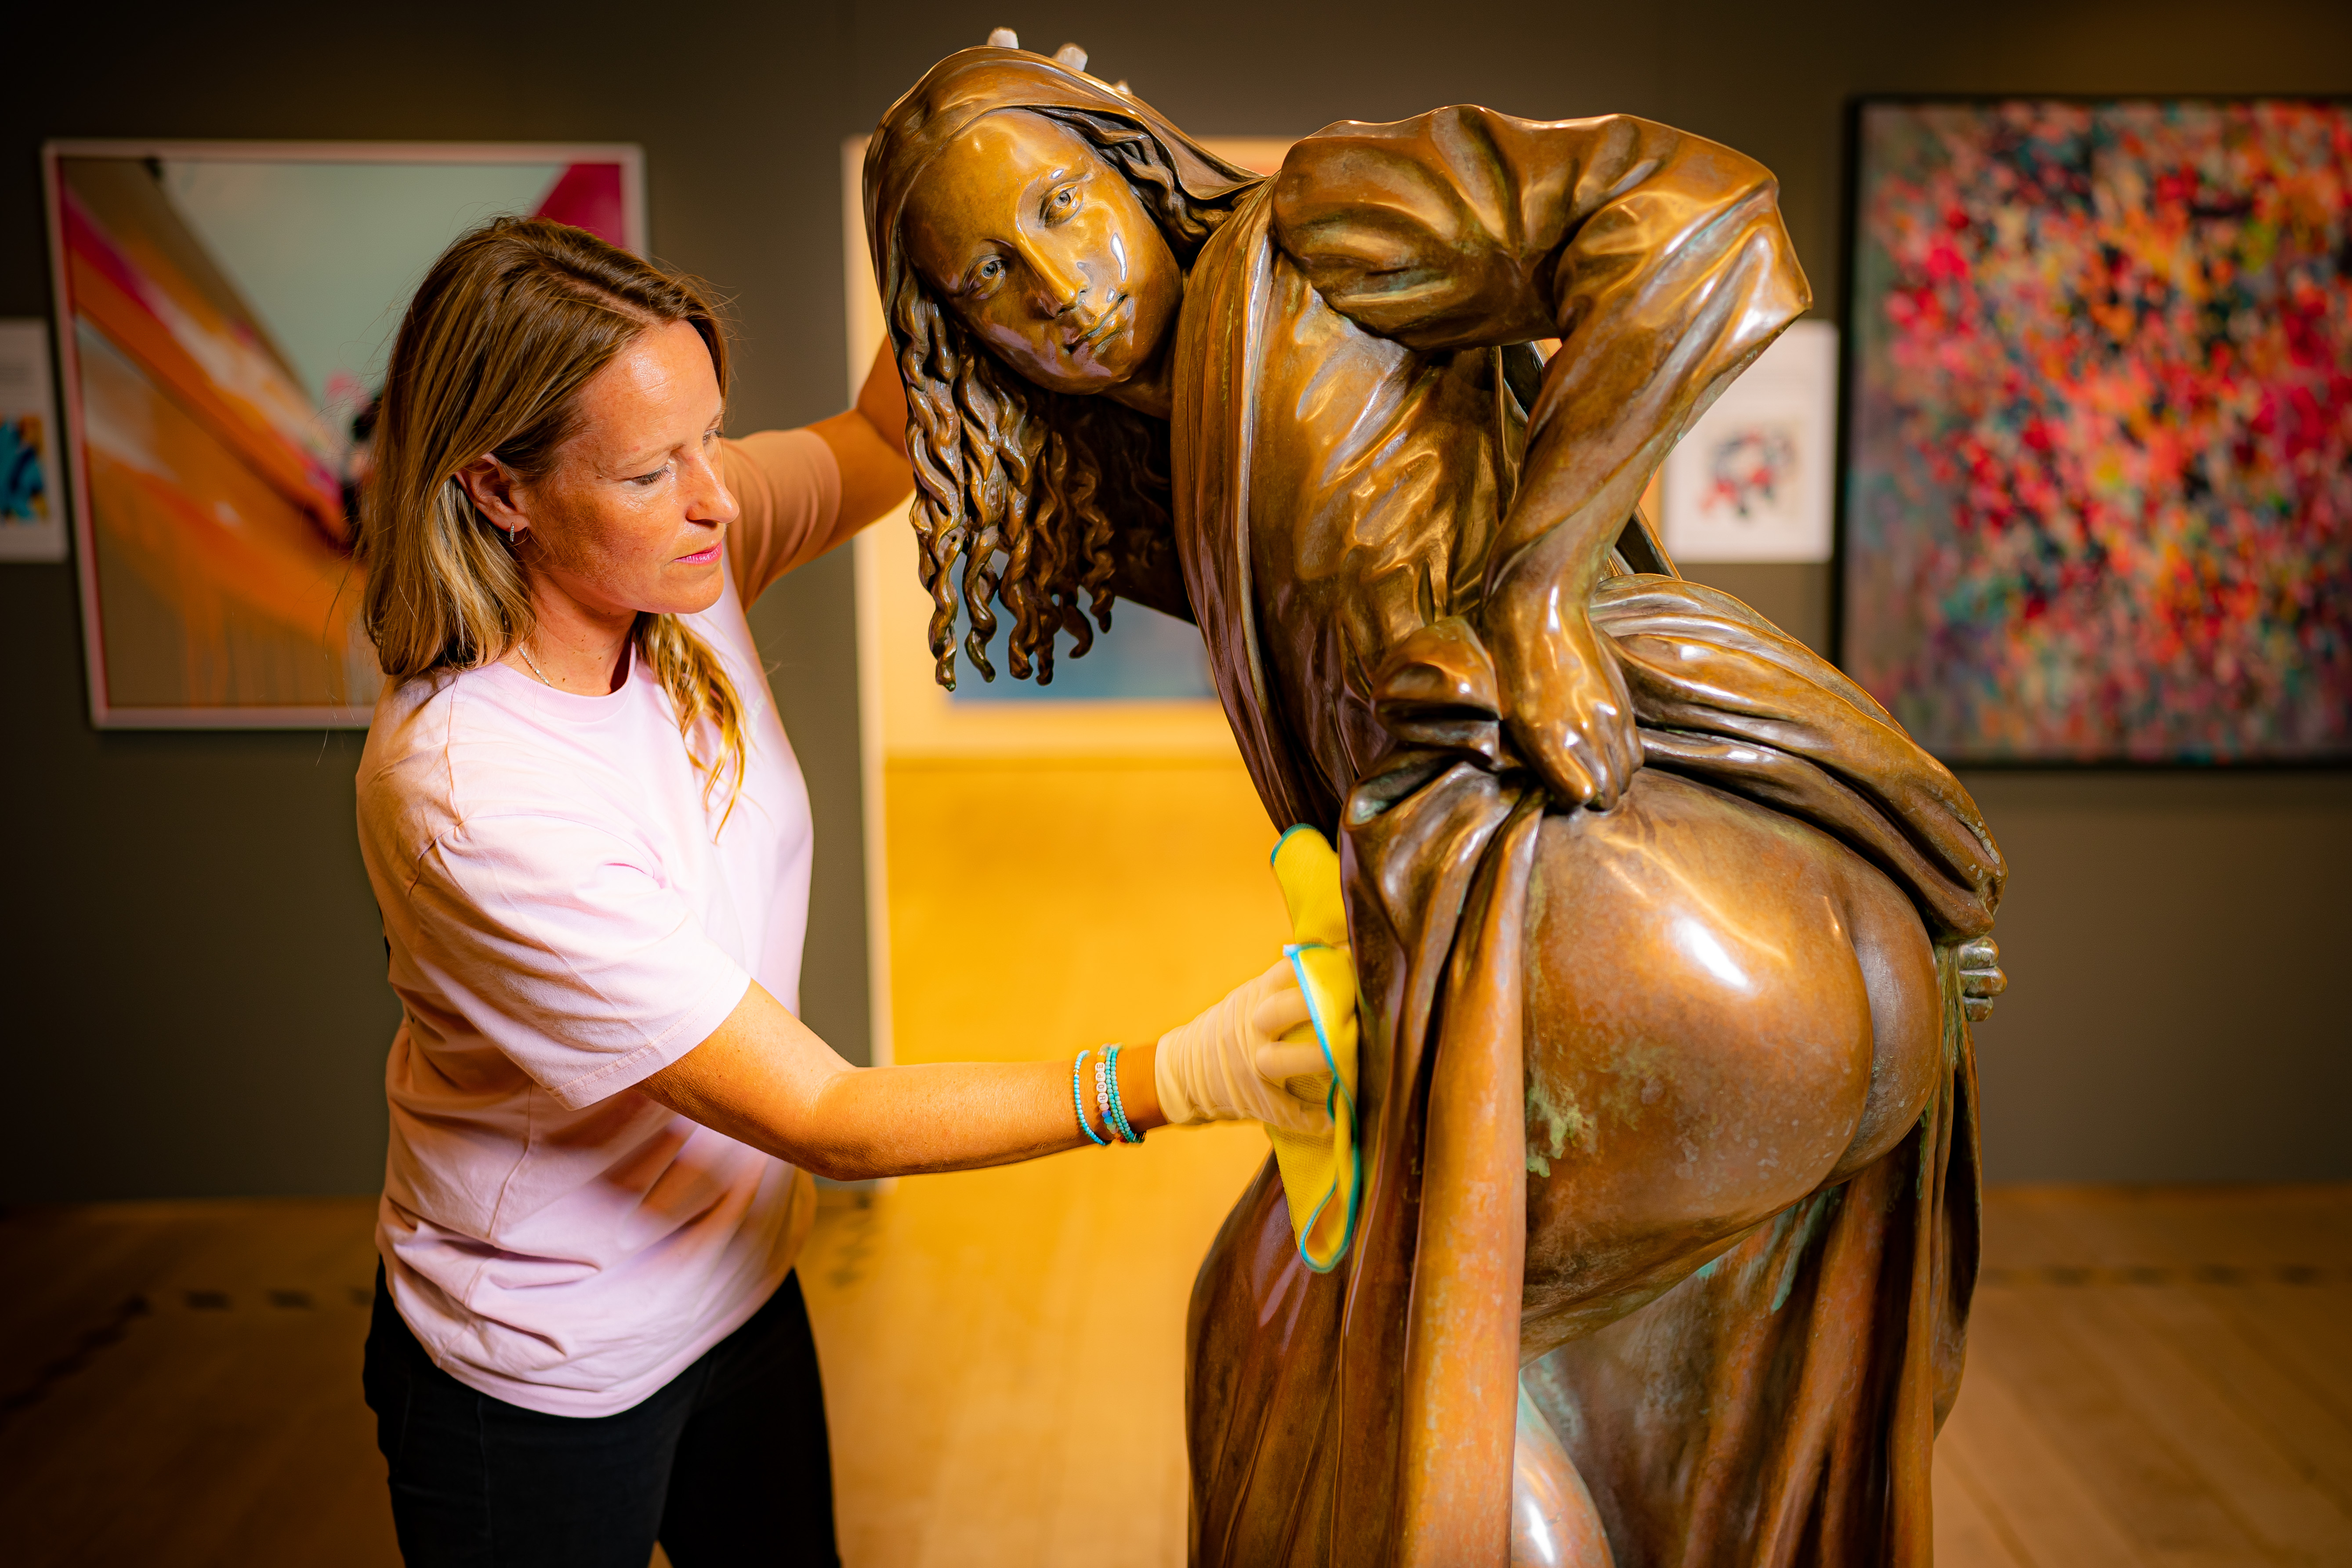 <p>Vanguard exhibition director, Mary McCarthy, makes final inspections on the life-size bronze artwork by Bristol street artist Nick Walker, titled 'Moona Lisa', which is going on show for the first time at M Shed, Bristol. The bronze statue, weighing 260kg, has been installed in the exhibition, exploring the instrumental role Bristolian artists have played in the development of British street art. Picture date: Monday September 13, 2021.</p>